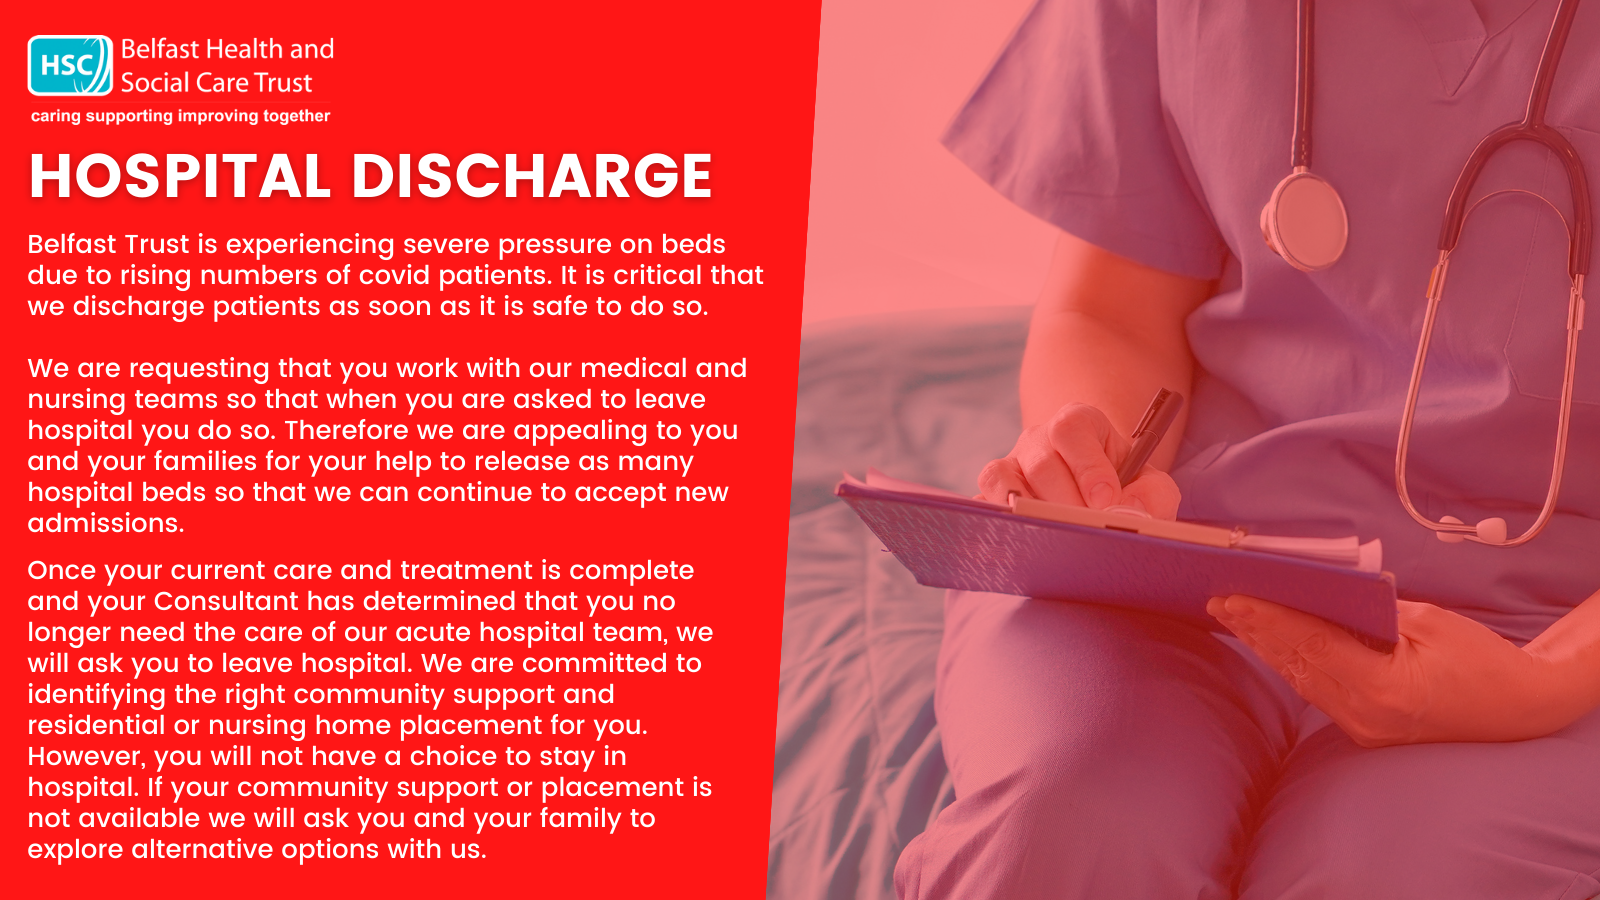 Hospital Discharge graphic